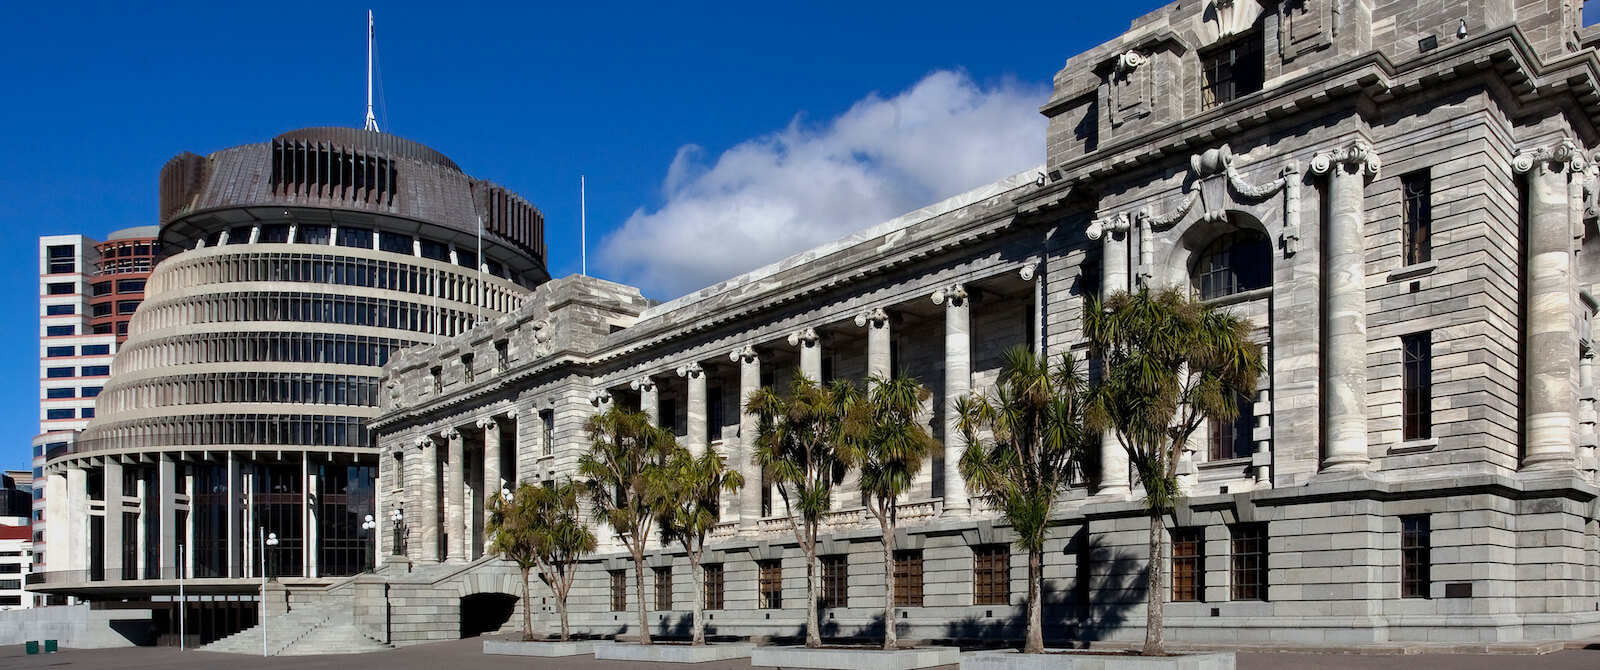 The Beehive, the administrative wing of the New Zealand parliament buildings in Wellington (Photo: Russel Street/Flickr)